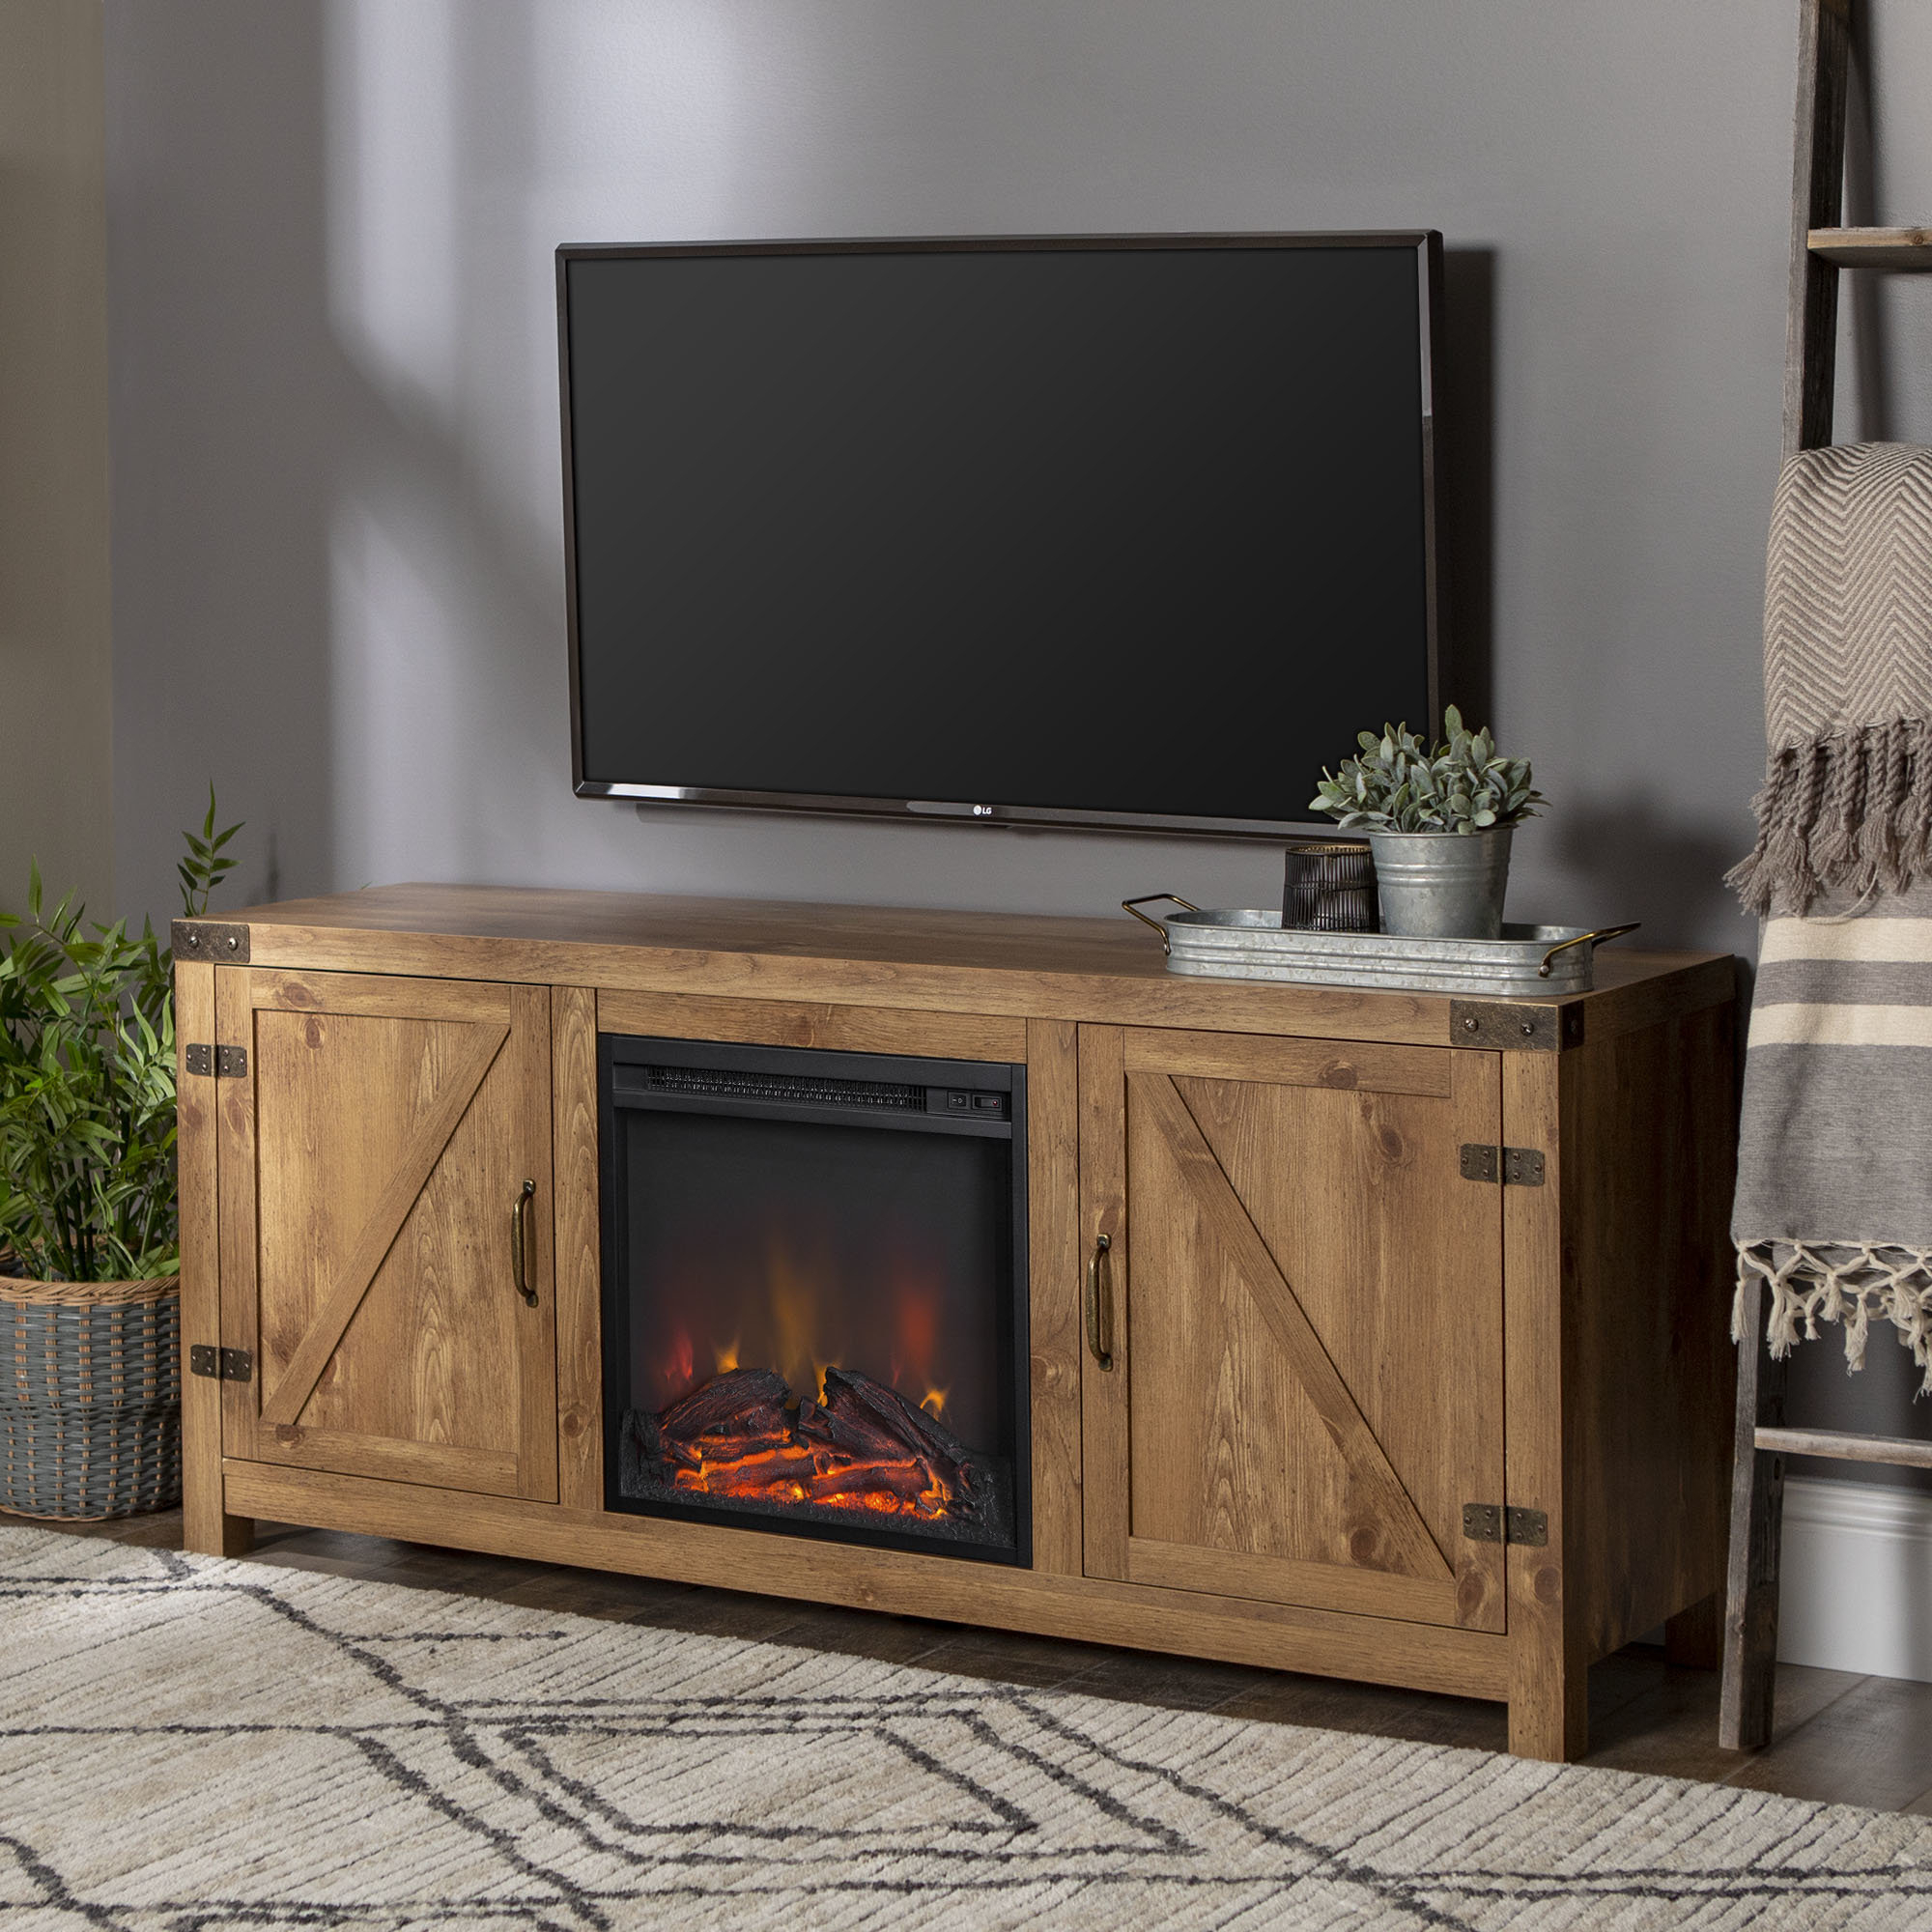 Fireplace Tv Stands & Entertainment Centers You'll Love | Wayfair.ca in Sinclair Blue 74 Inch Tv Stands (Image 8 of 30)